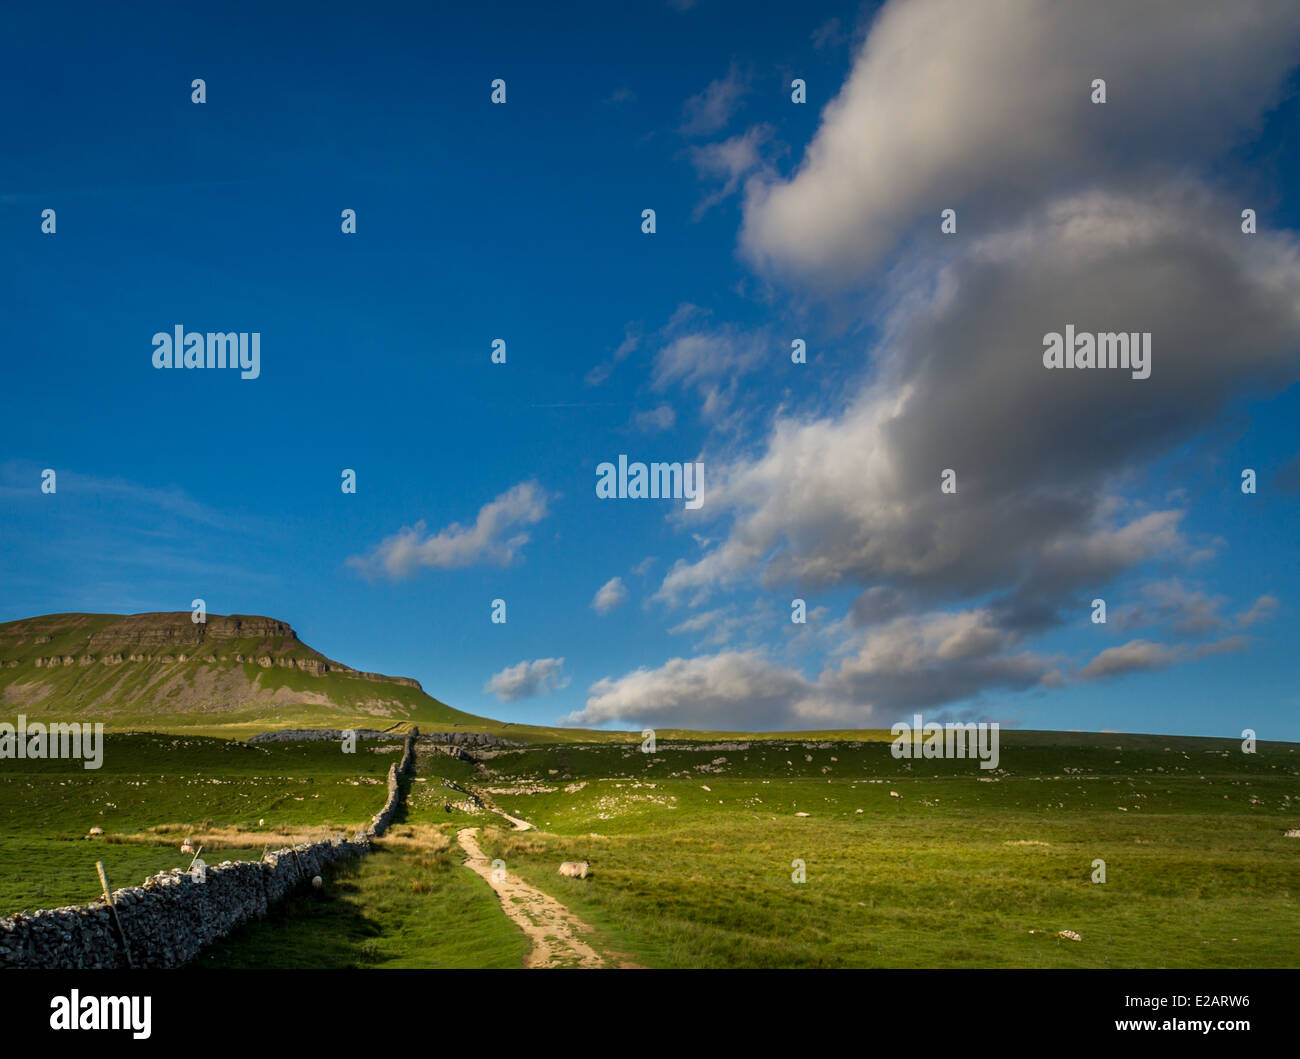 Early morning ascent of Pen-y-Ghent mountain, Yorkshire Dales, UK - Stock Image